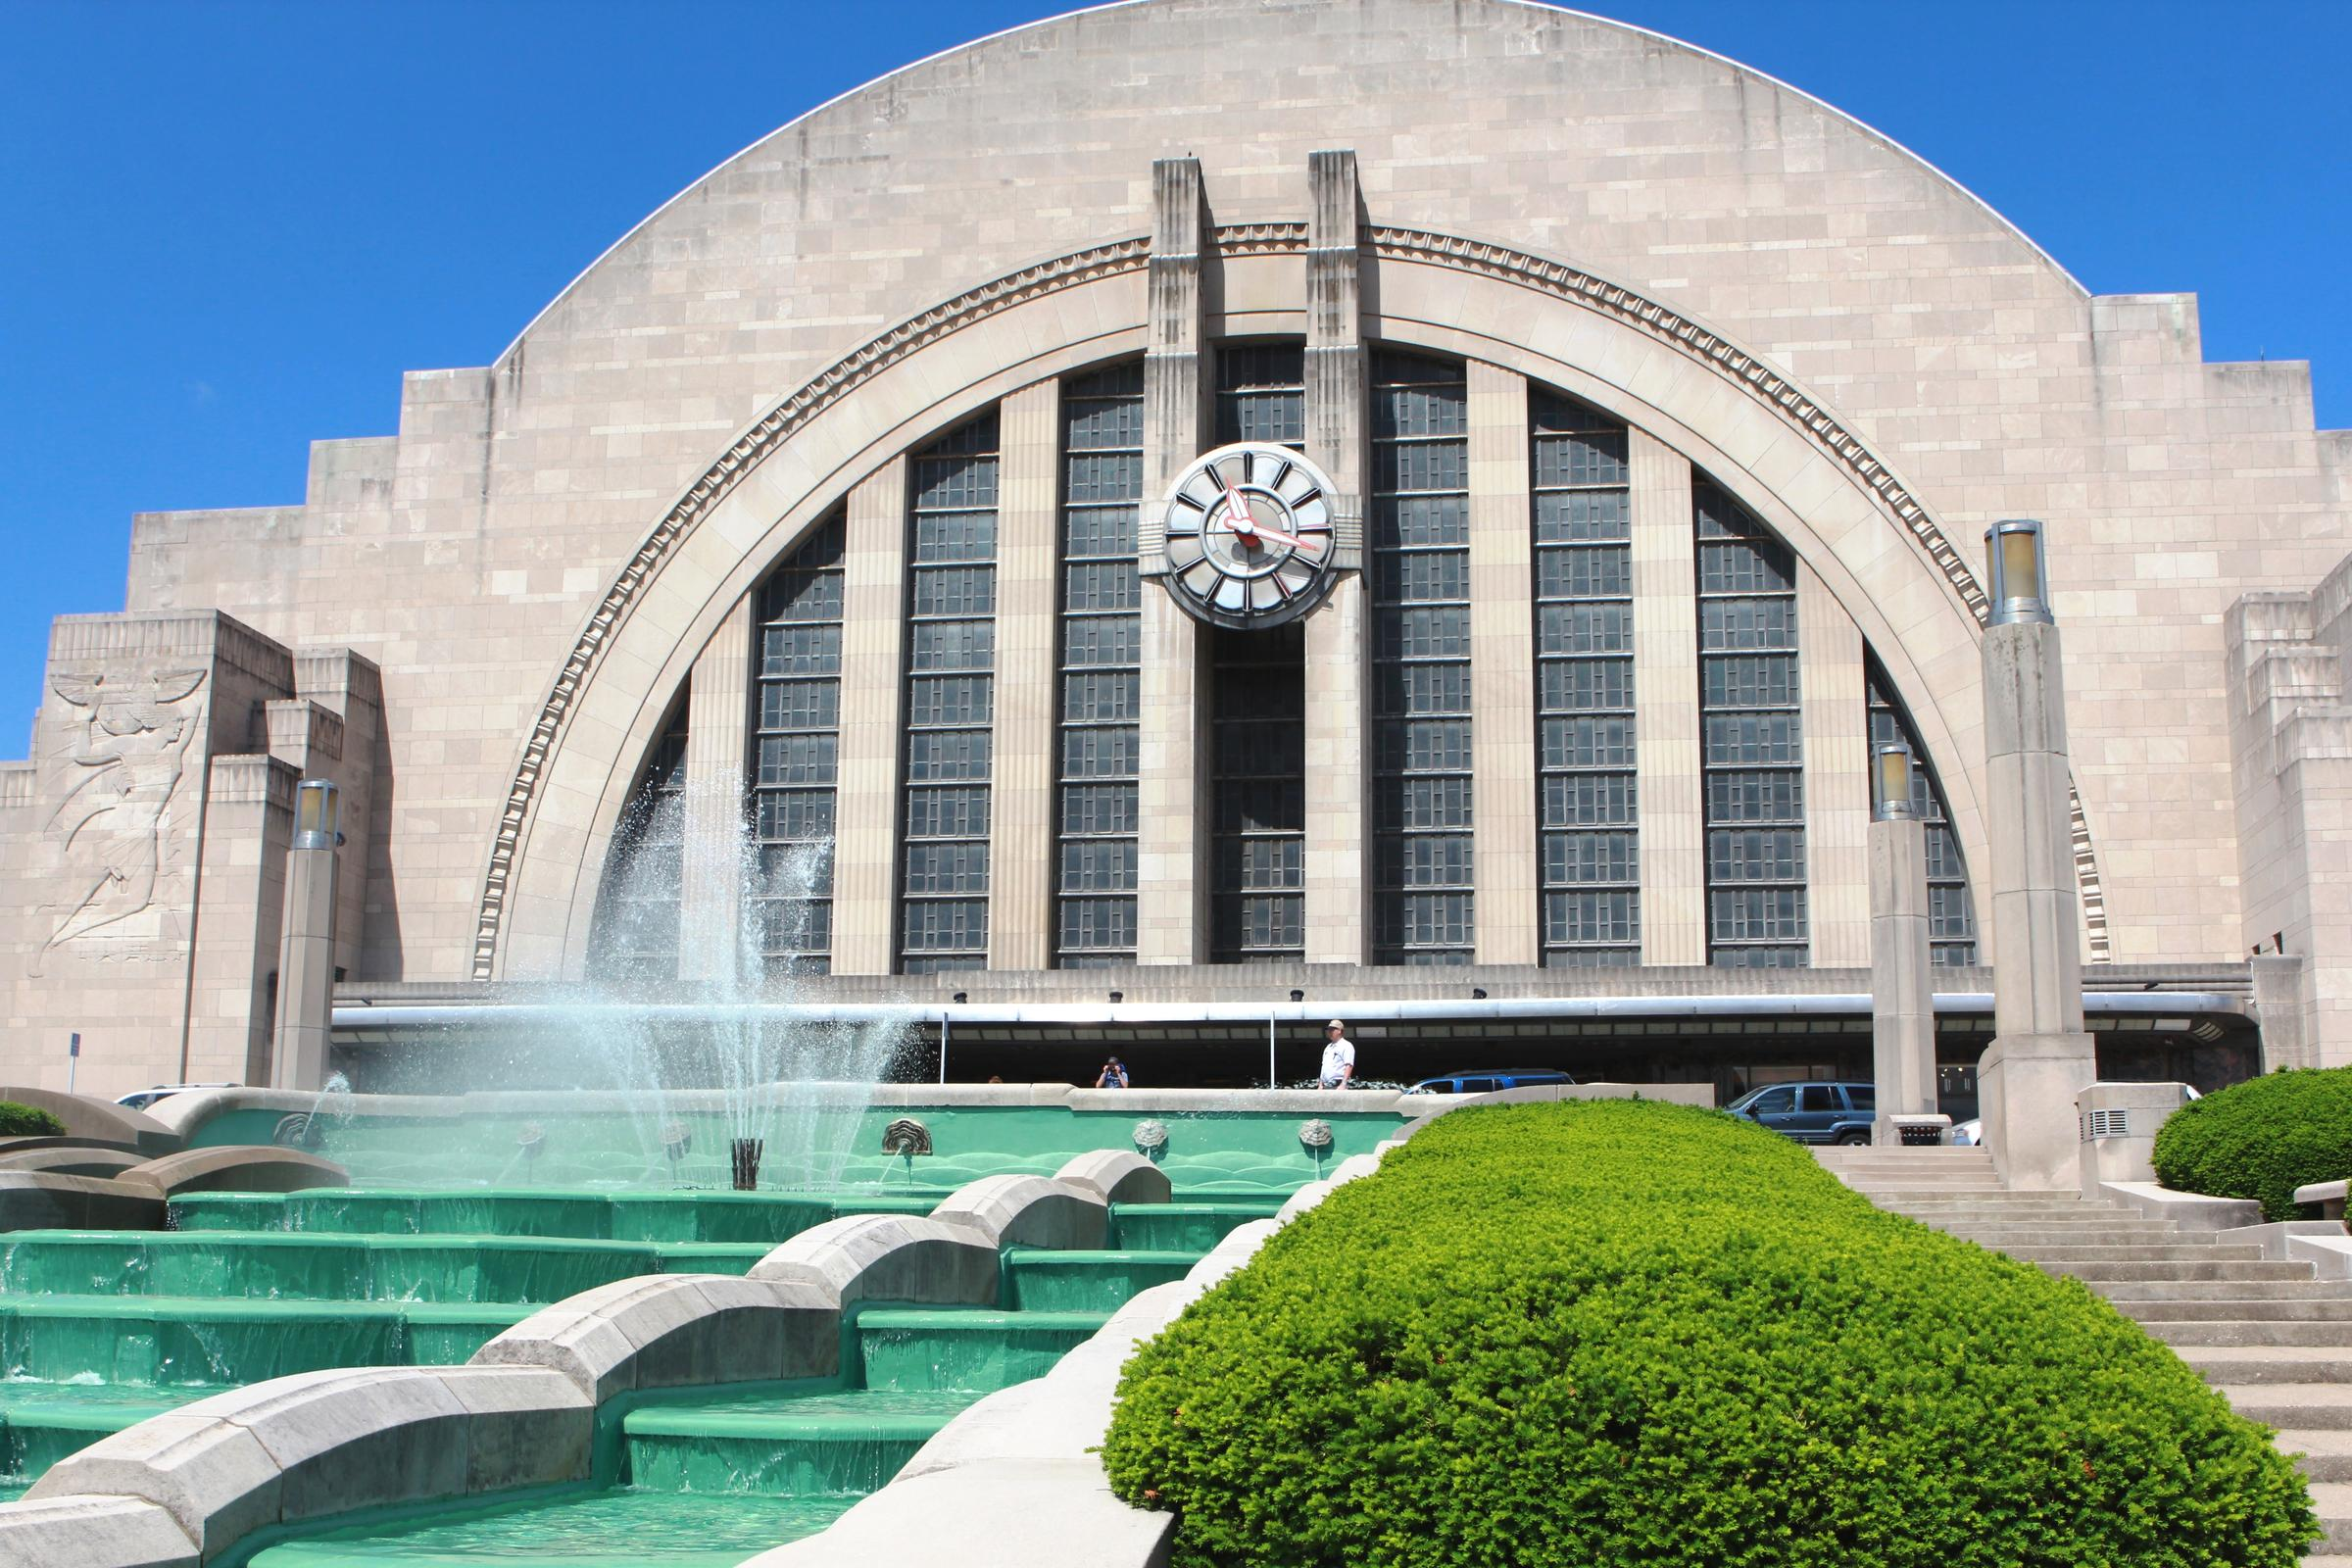 The Cincinnati Museum Center at Union Terminal, originally Cincinnati Union Terminal, is a mixed-use complex in the Queensgate neighborhood of Cincinnati, Ohio, United States.